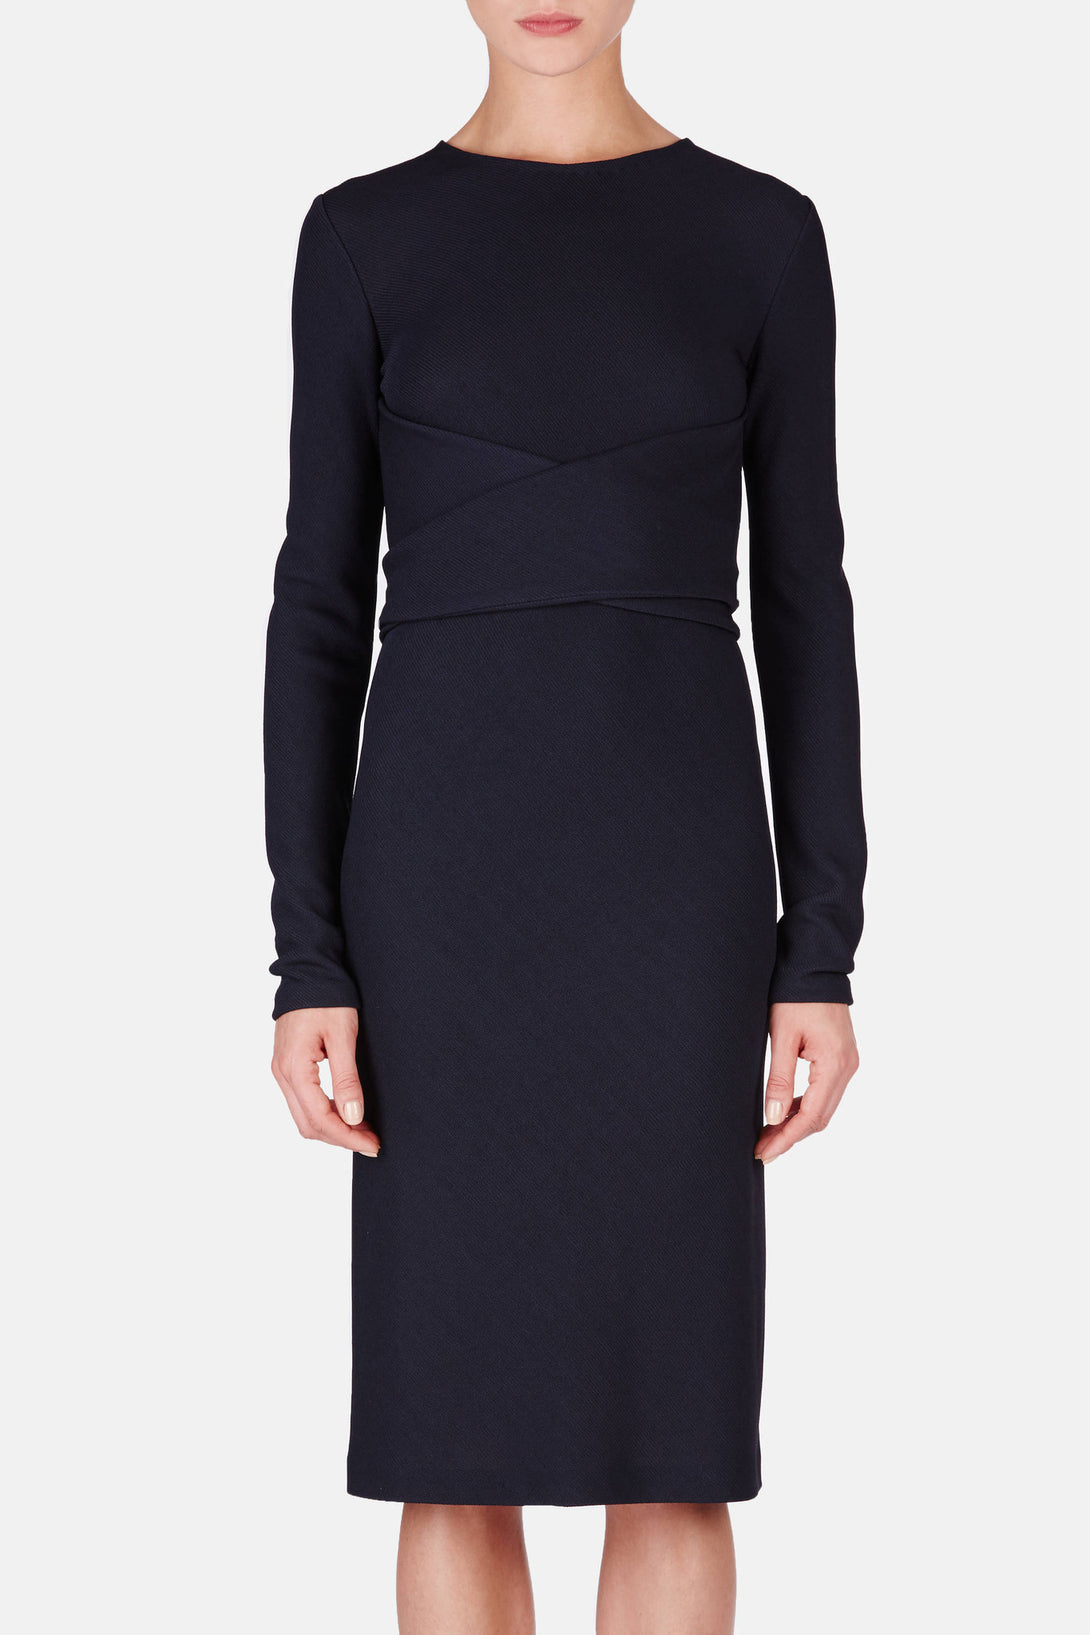 Structured Jersey Christina Bis Dress - Dark Navy